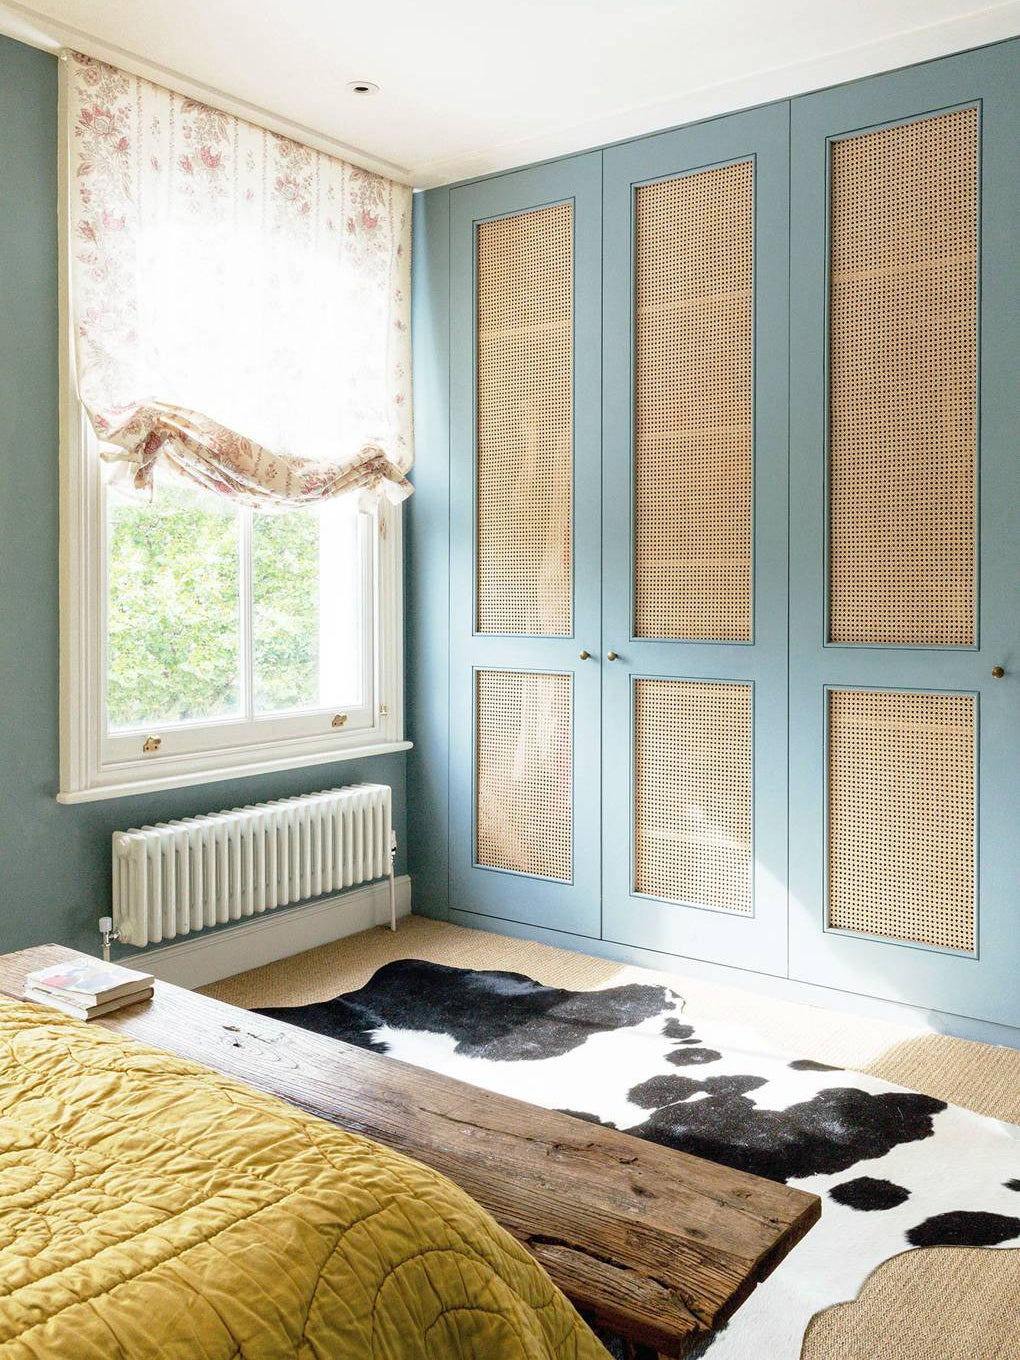 Bedroom wardrobes with cane doors and blue walls